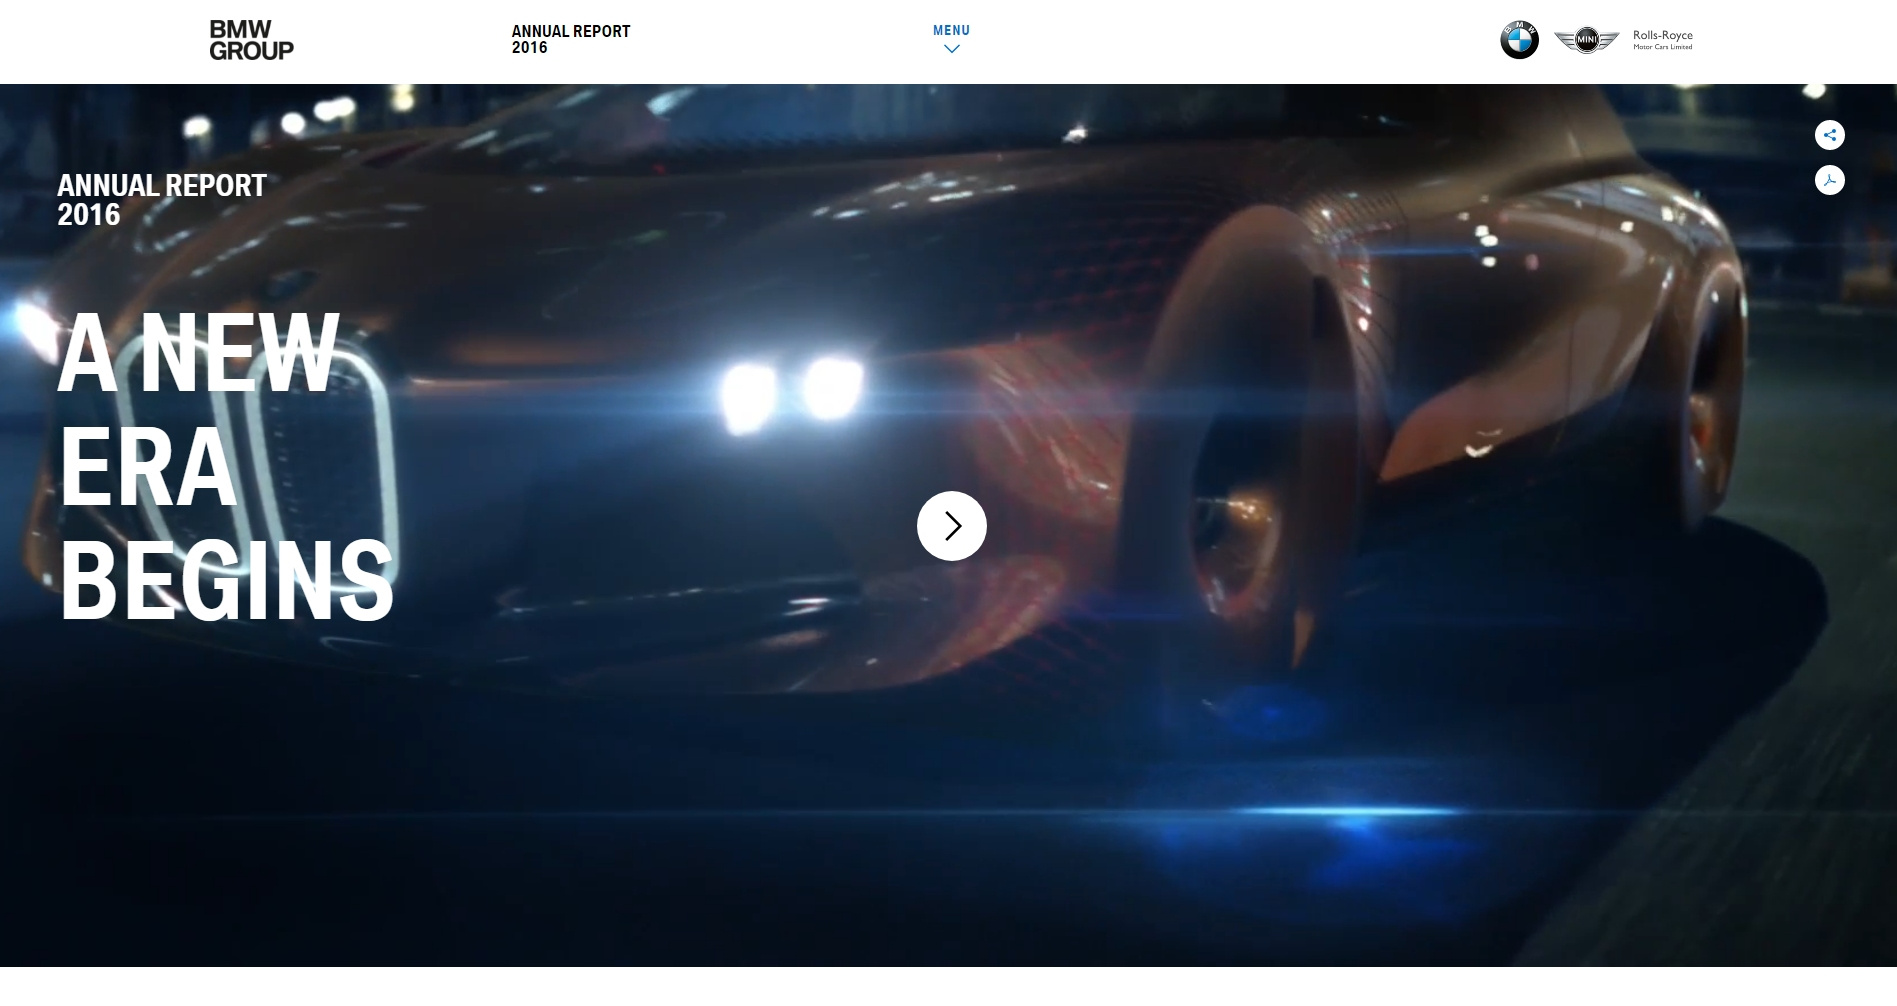 Lacp 2016 Vision Awards Annual Report Competition Bmw Group Eqs